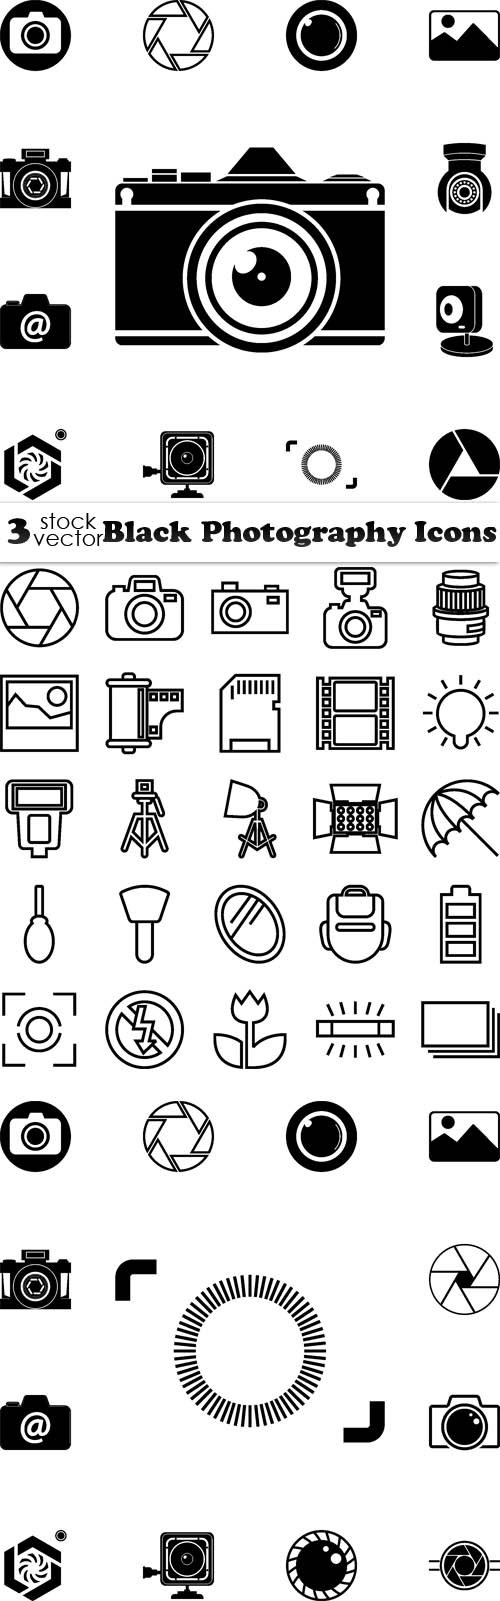 Vectors - Black Photography Icons